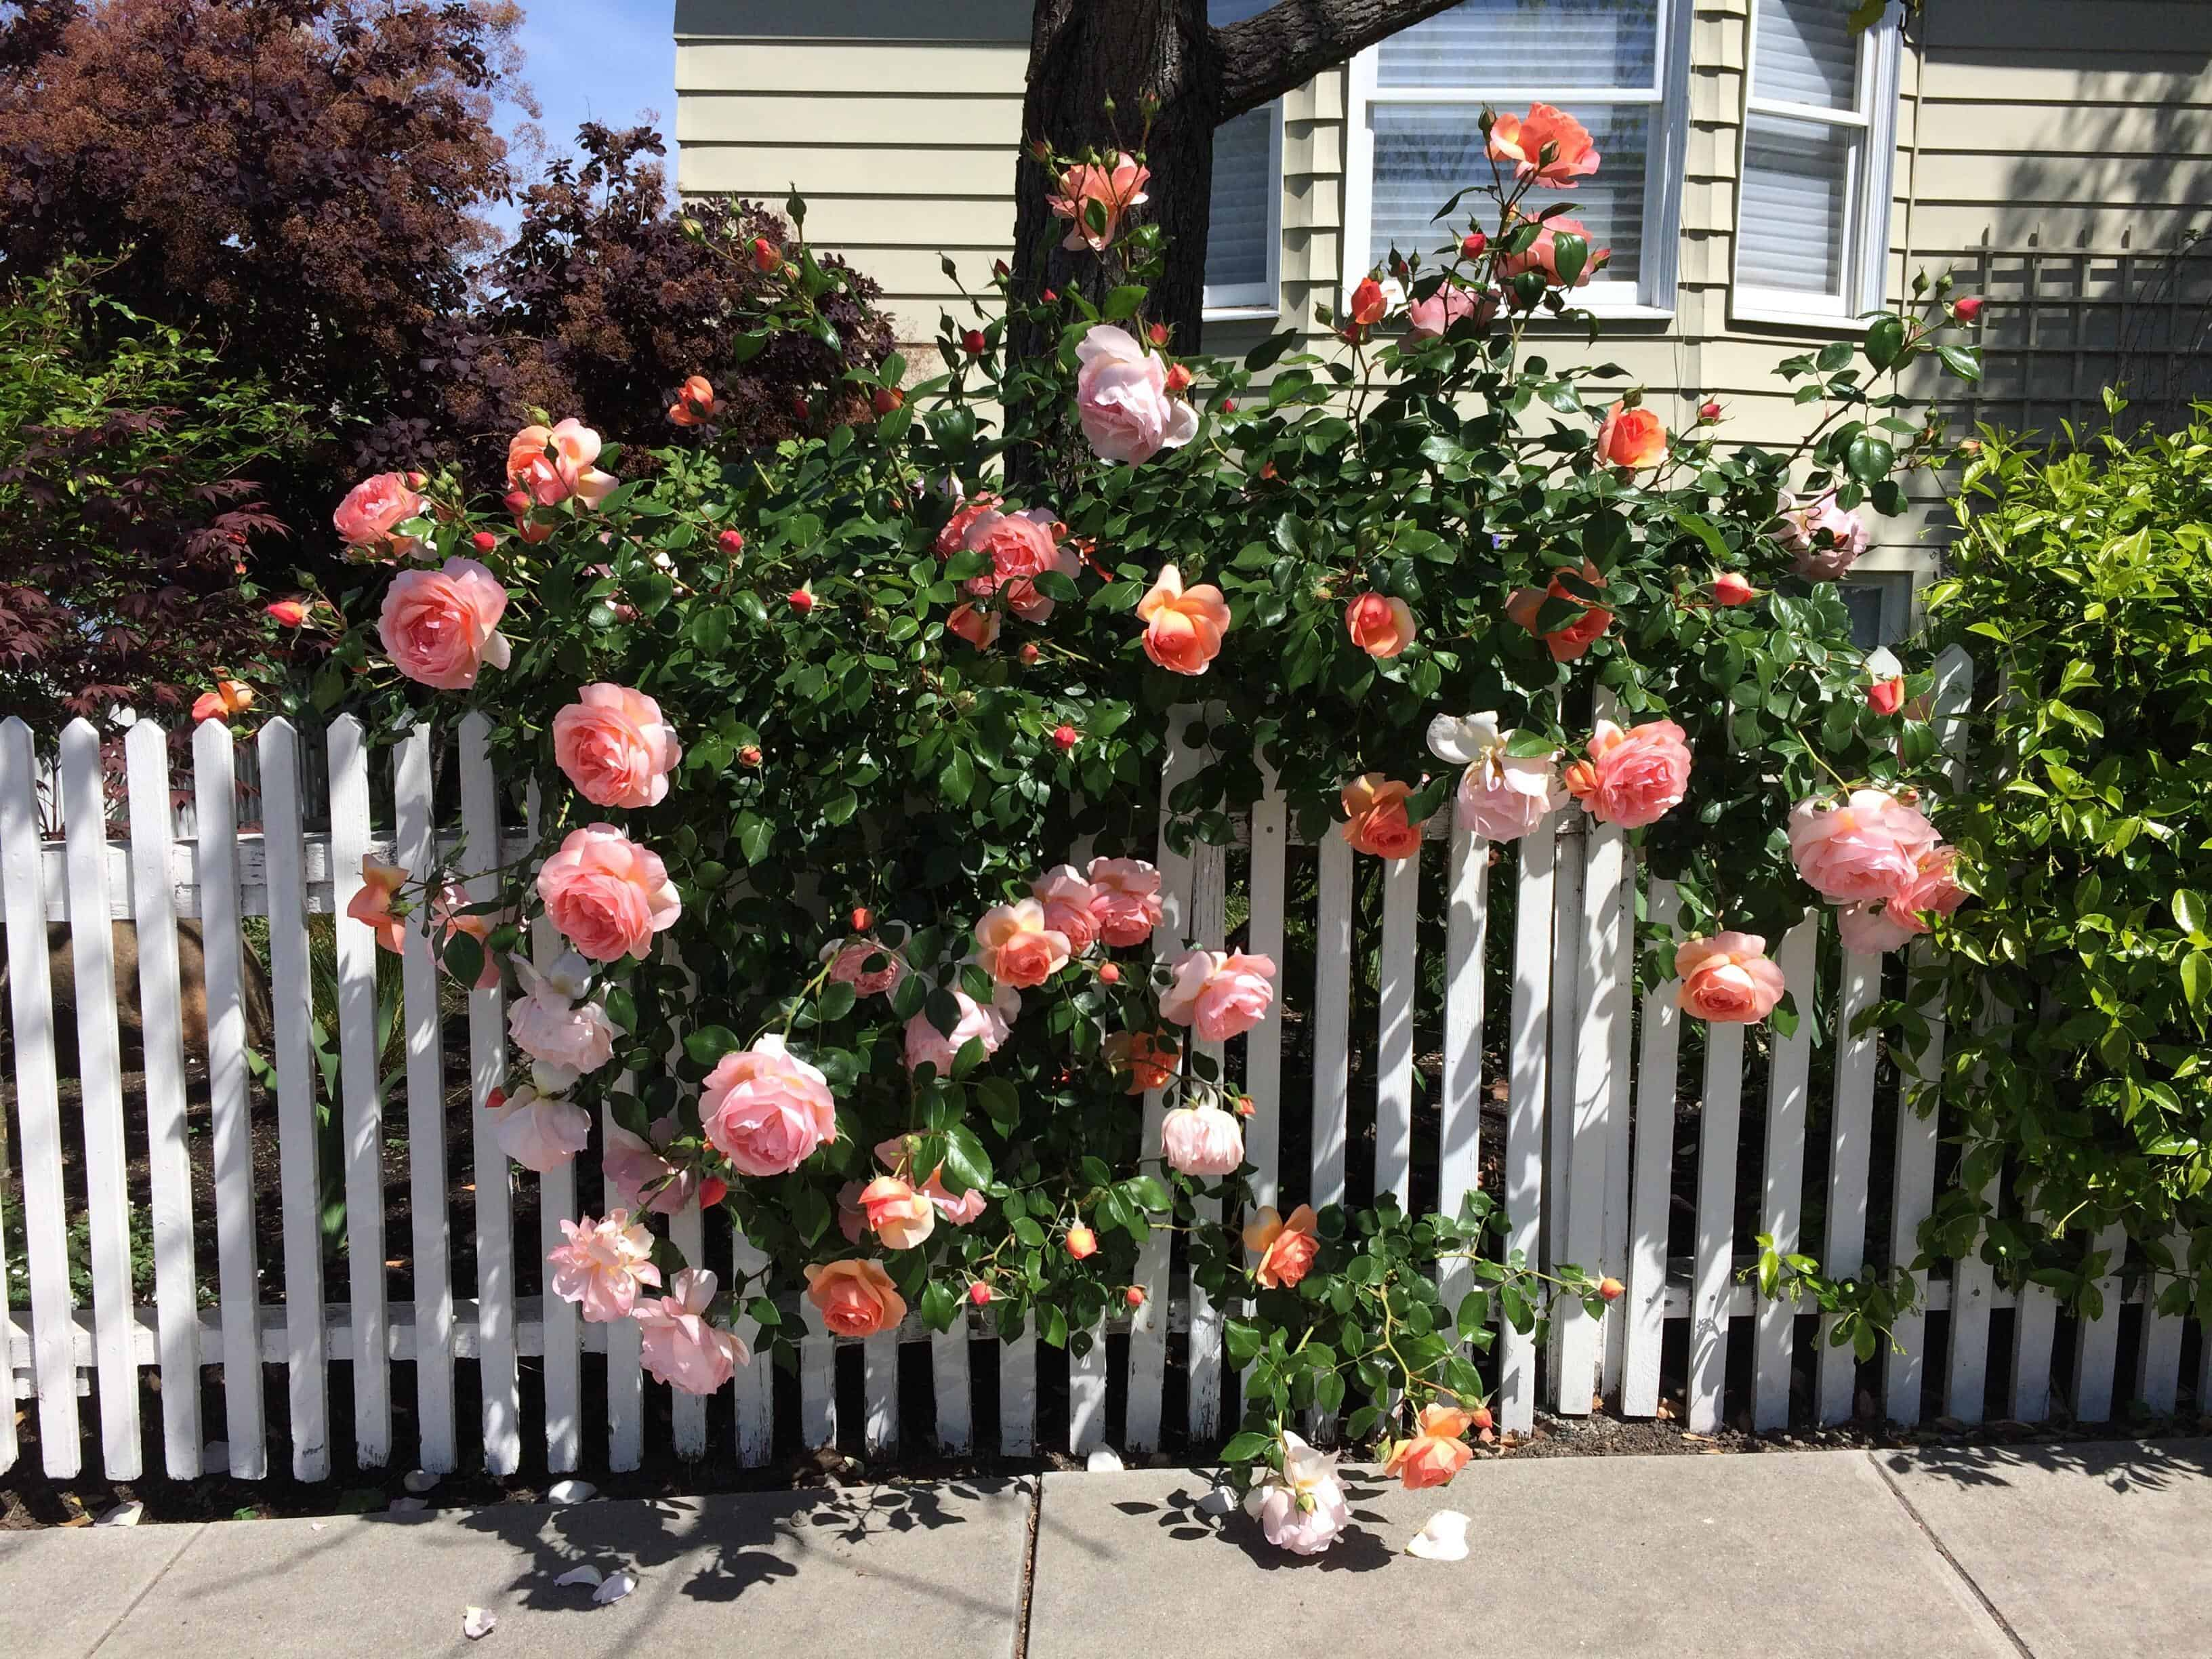 Roses peeking through a white fence